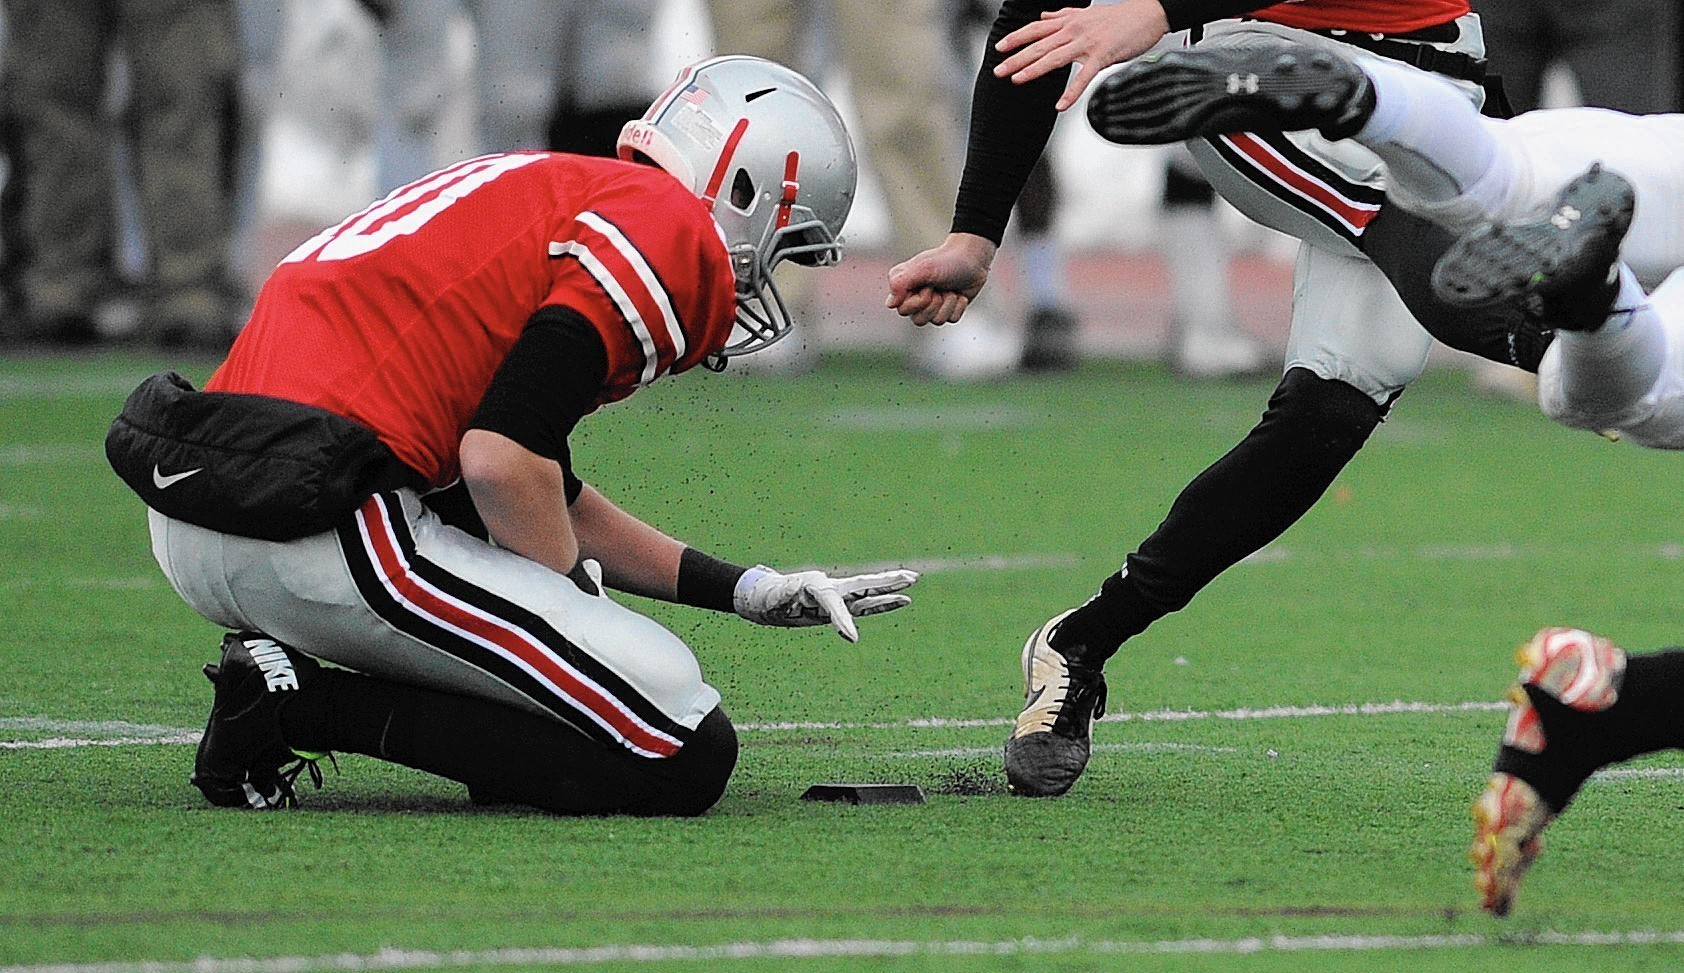 Lehigh Valley Artificial Turf Debate Is It Safe For